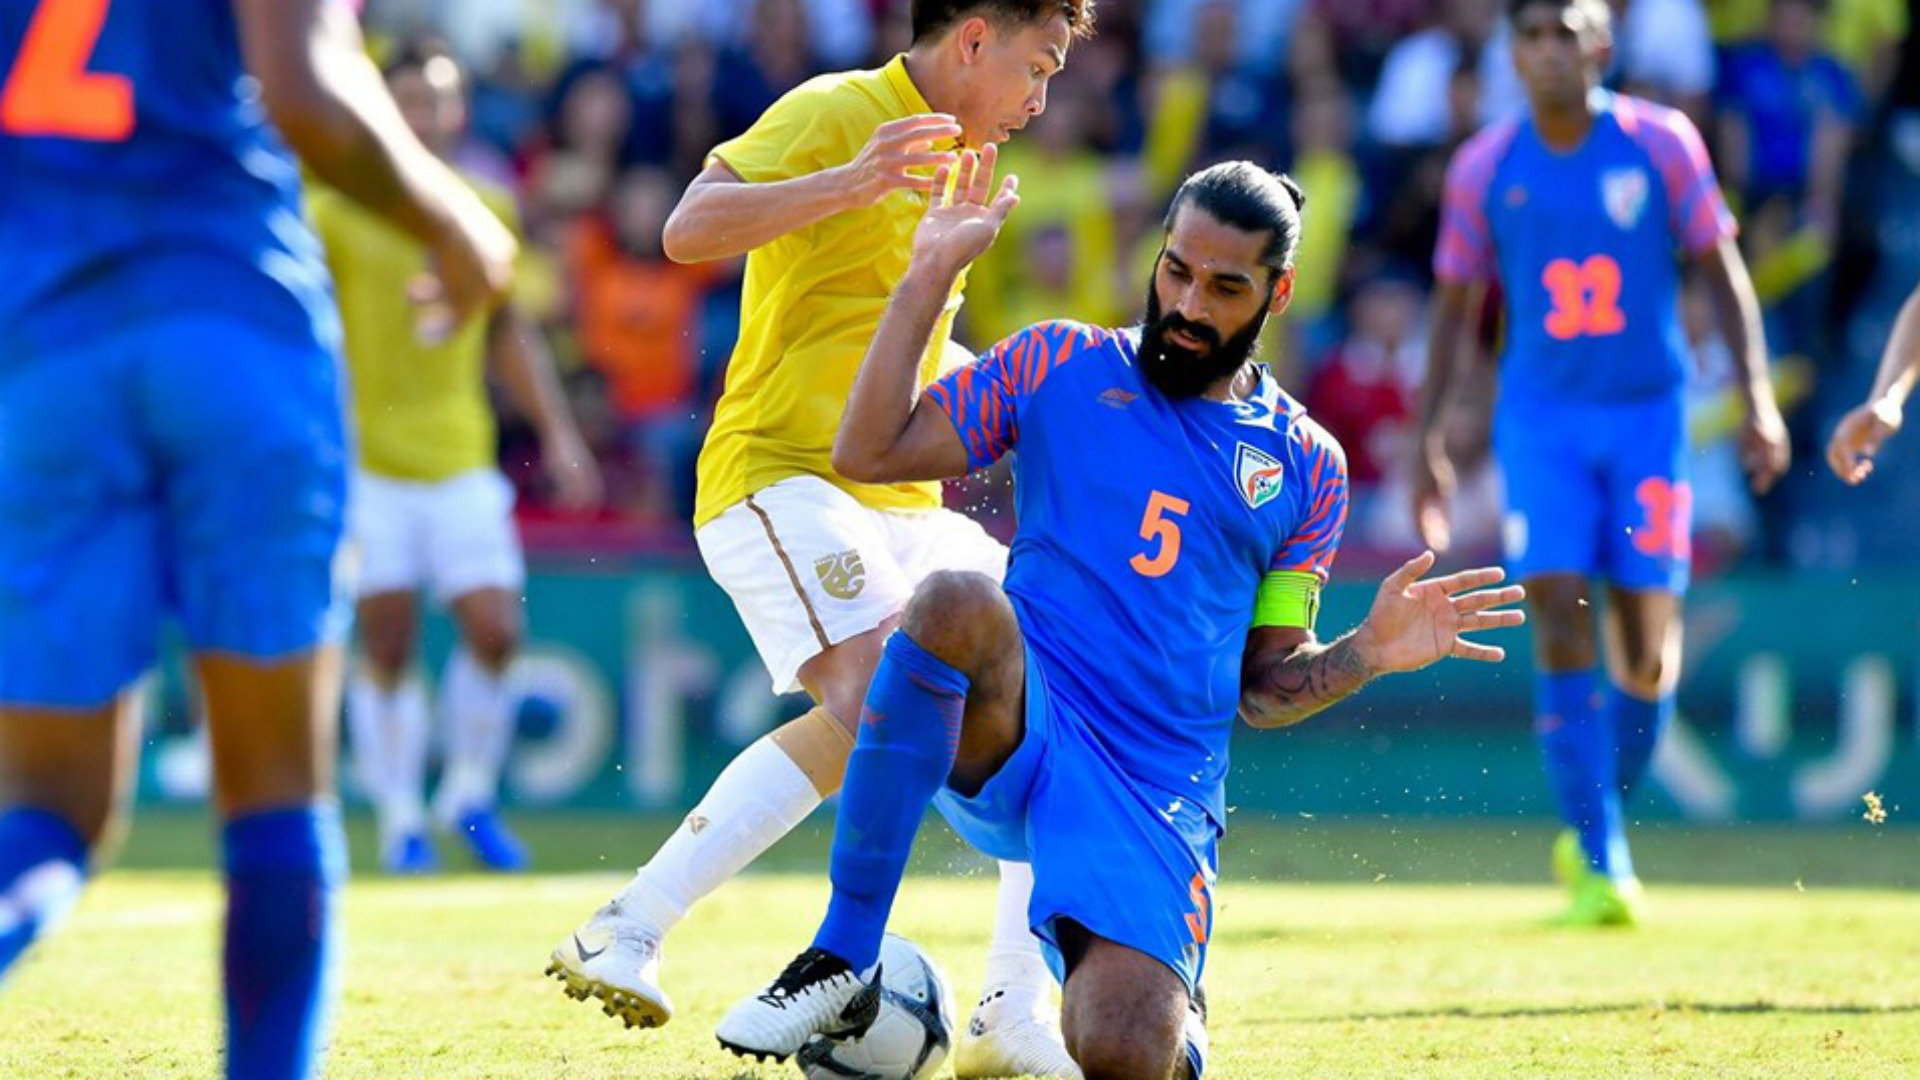 Sandesh Jhingan India Thailand King's Cup 2019